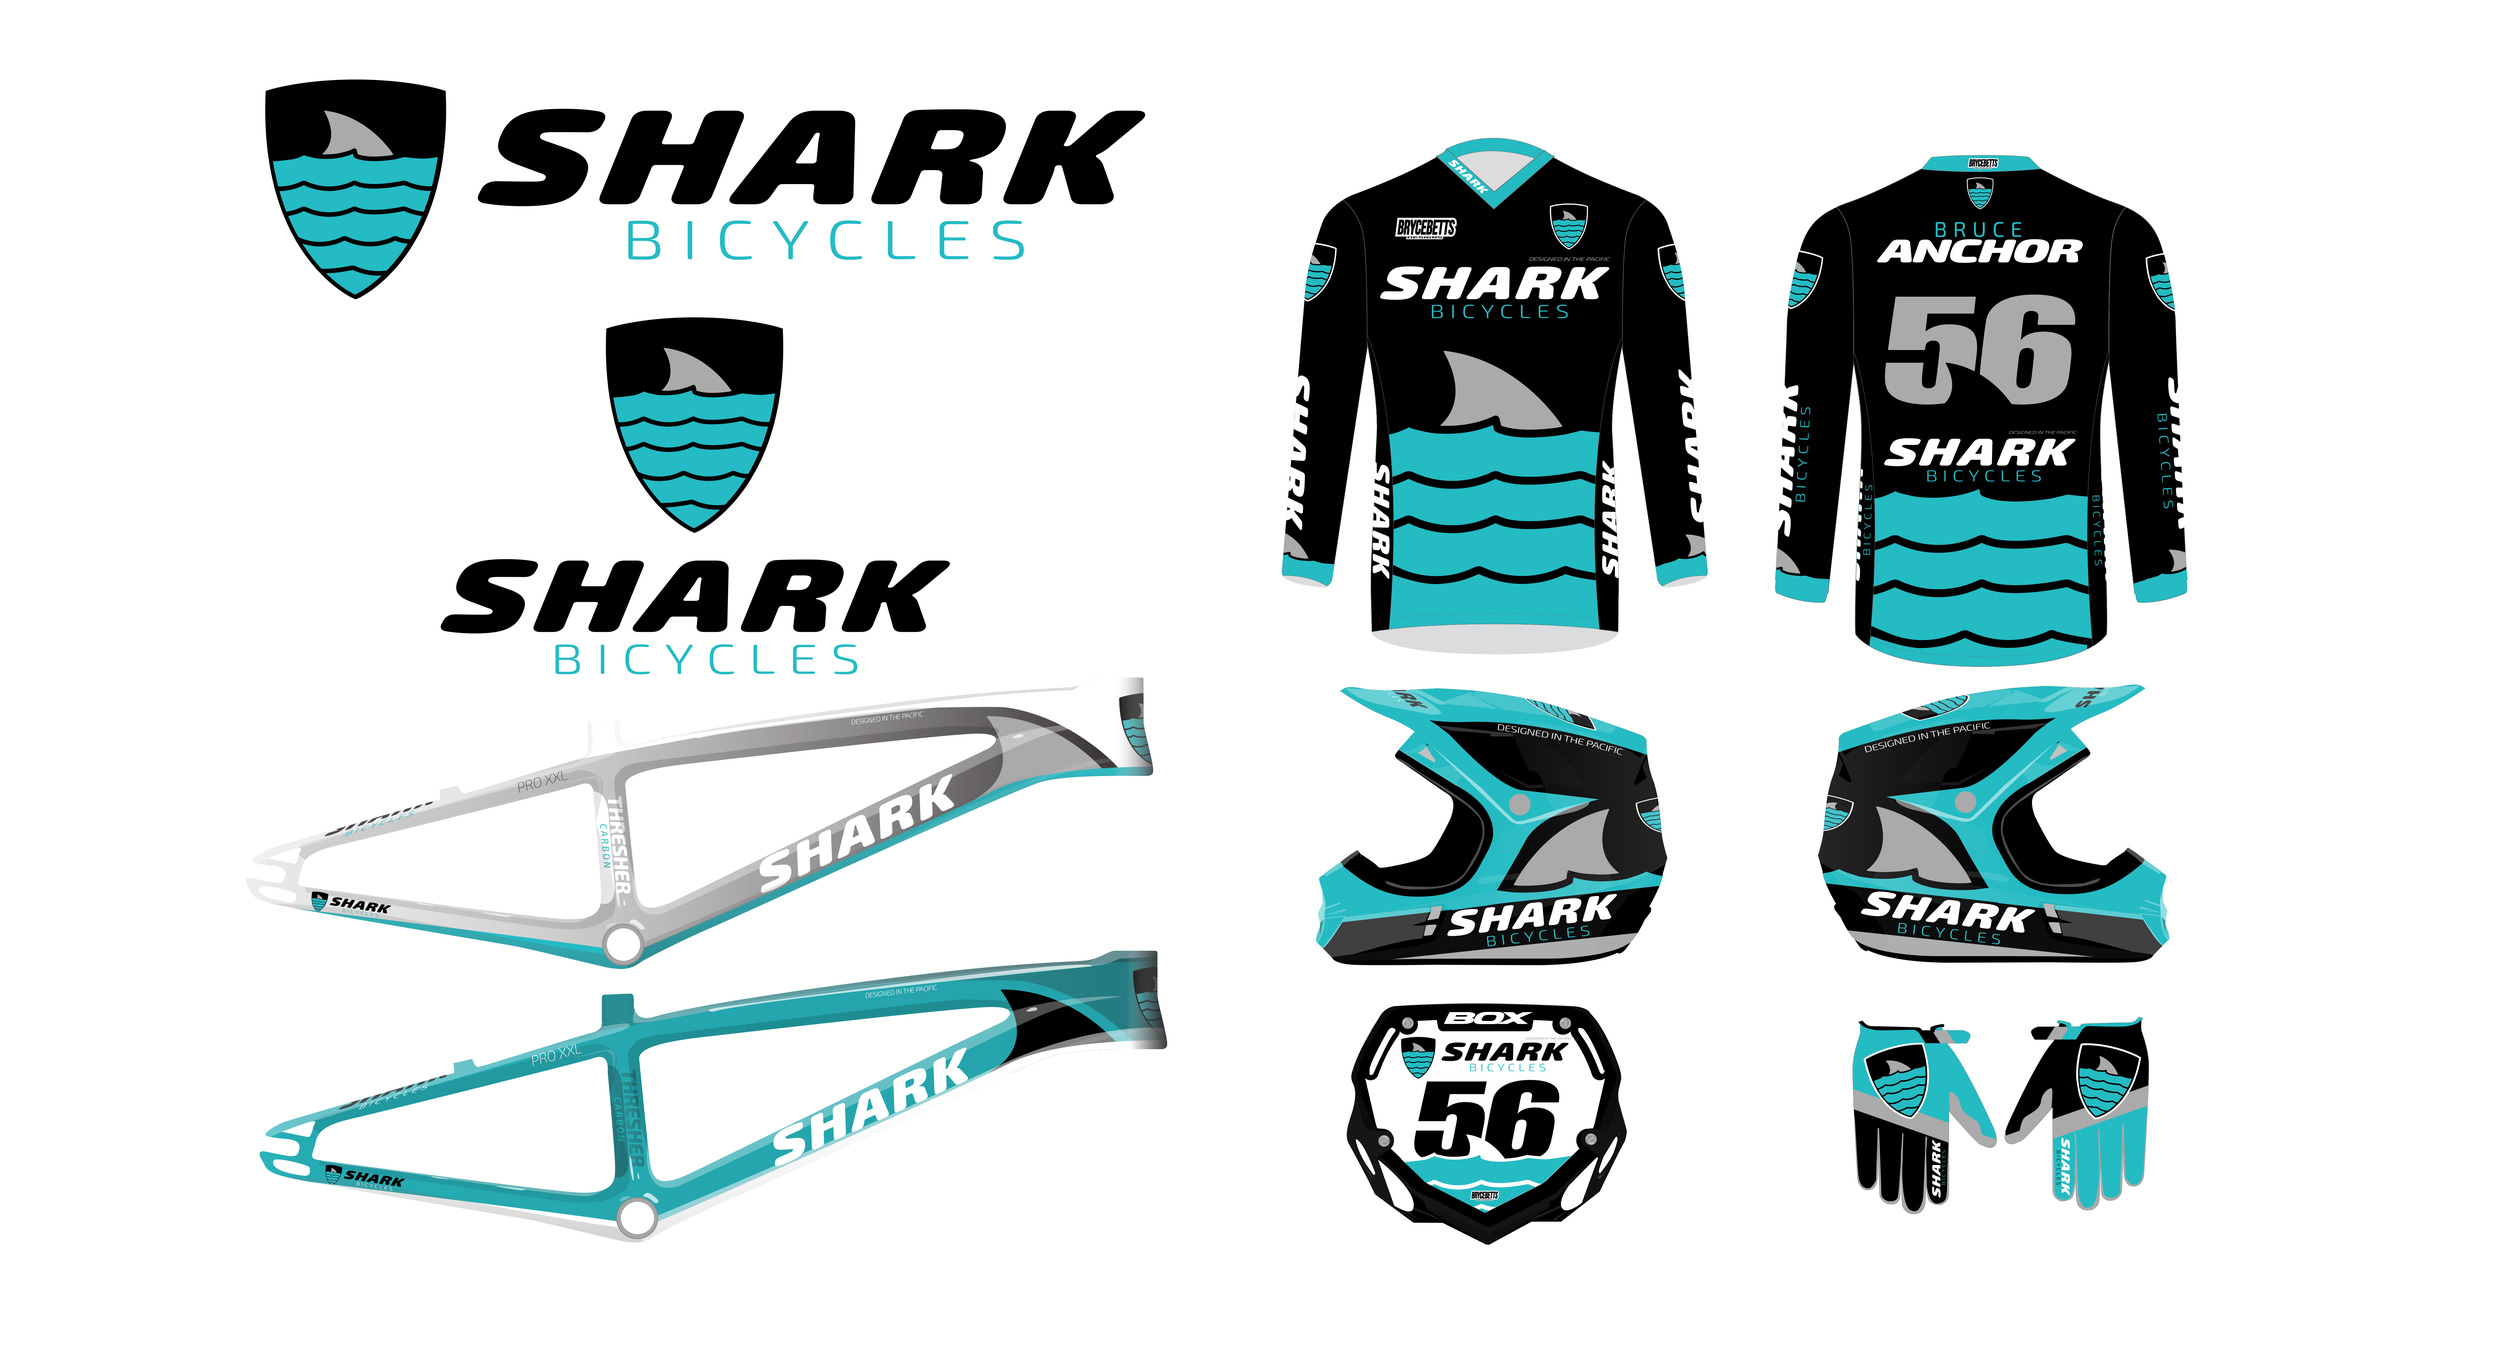 The entire Shark Bicycles line - Logo, Jersey, BMX frame, Helmet, Gloves, numberplate designed by Bryce Betts Designs and inspired by Shark Week